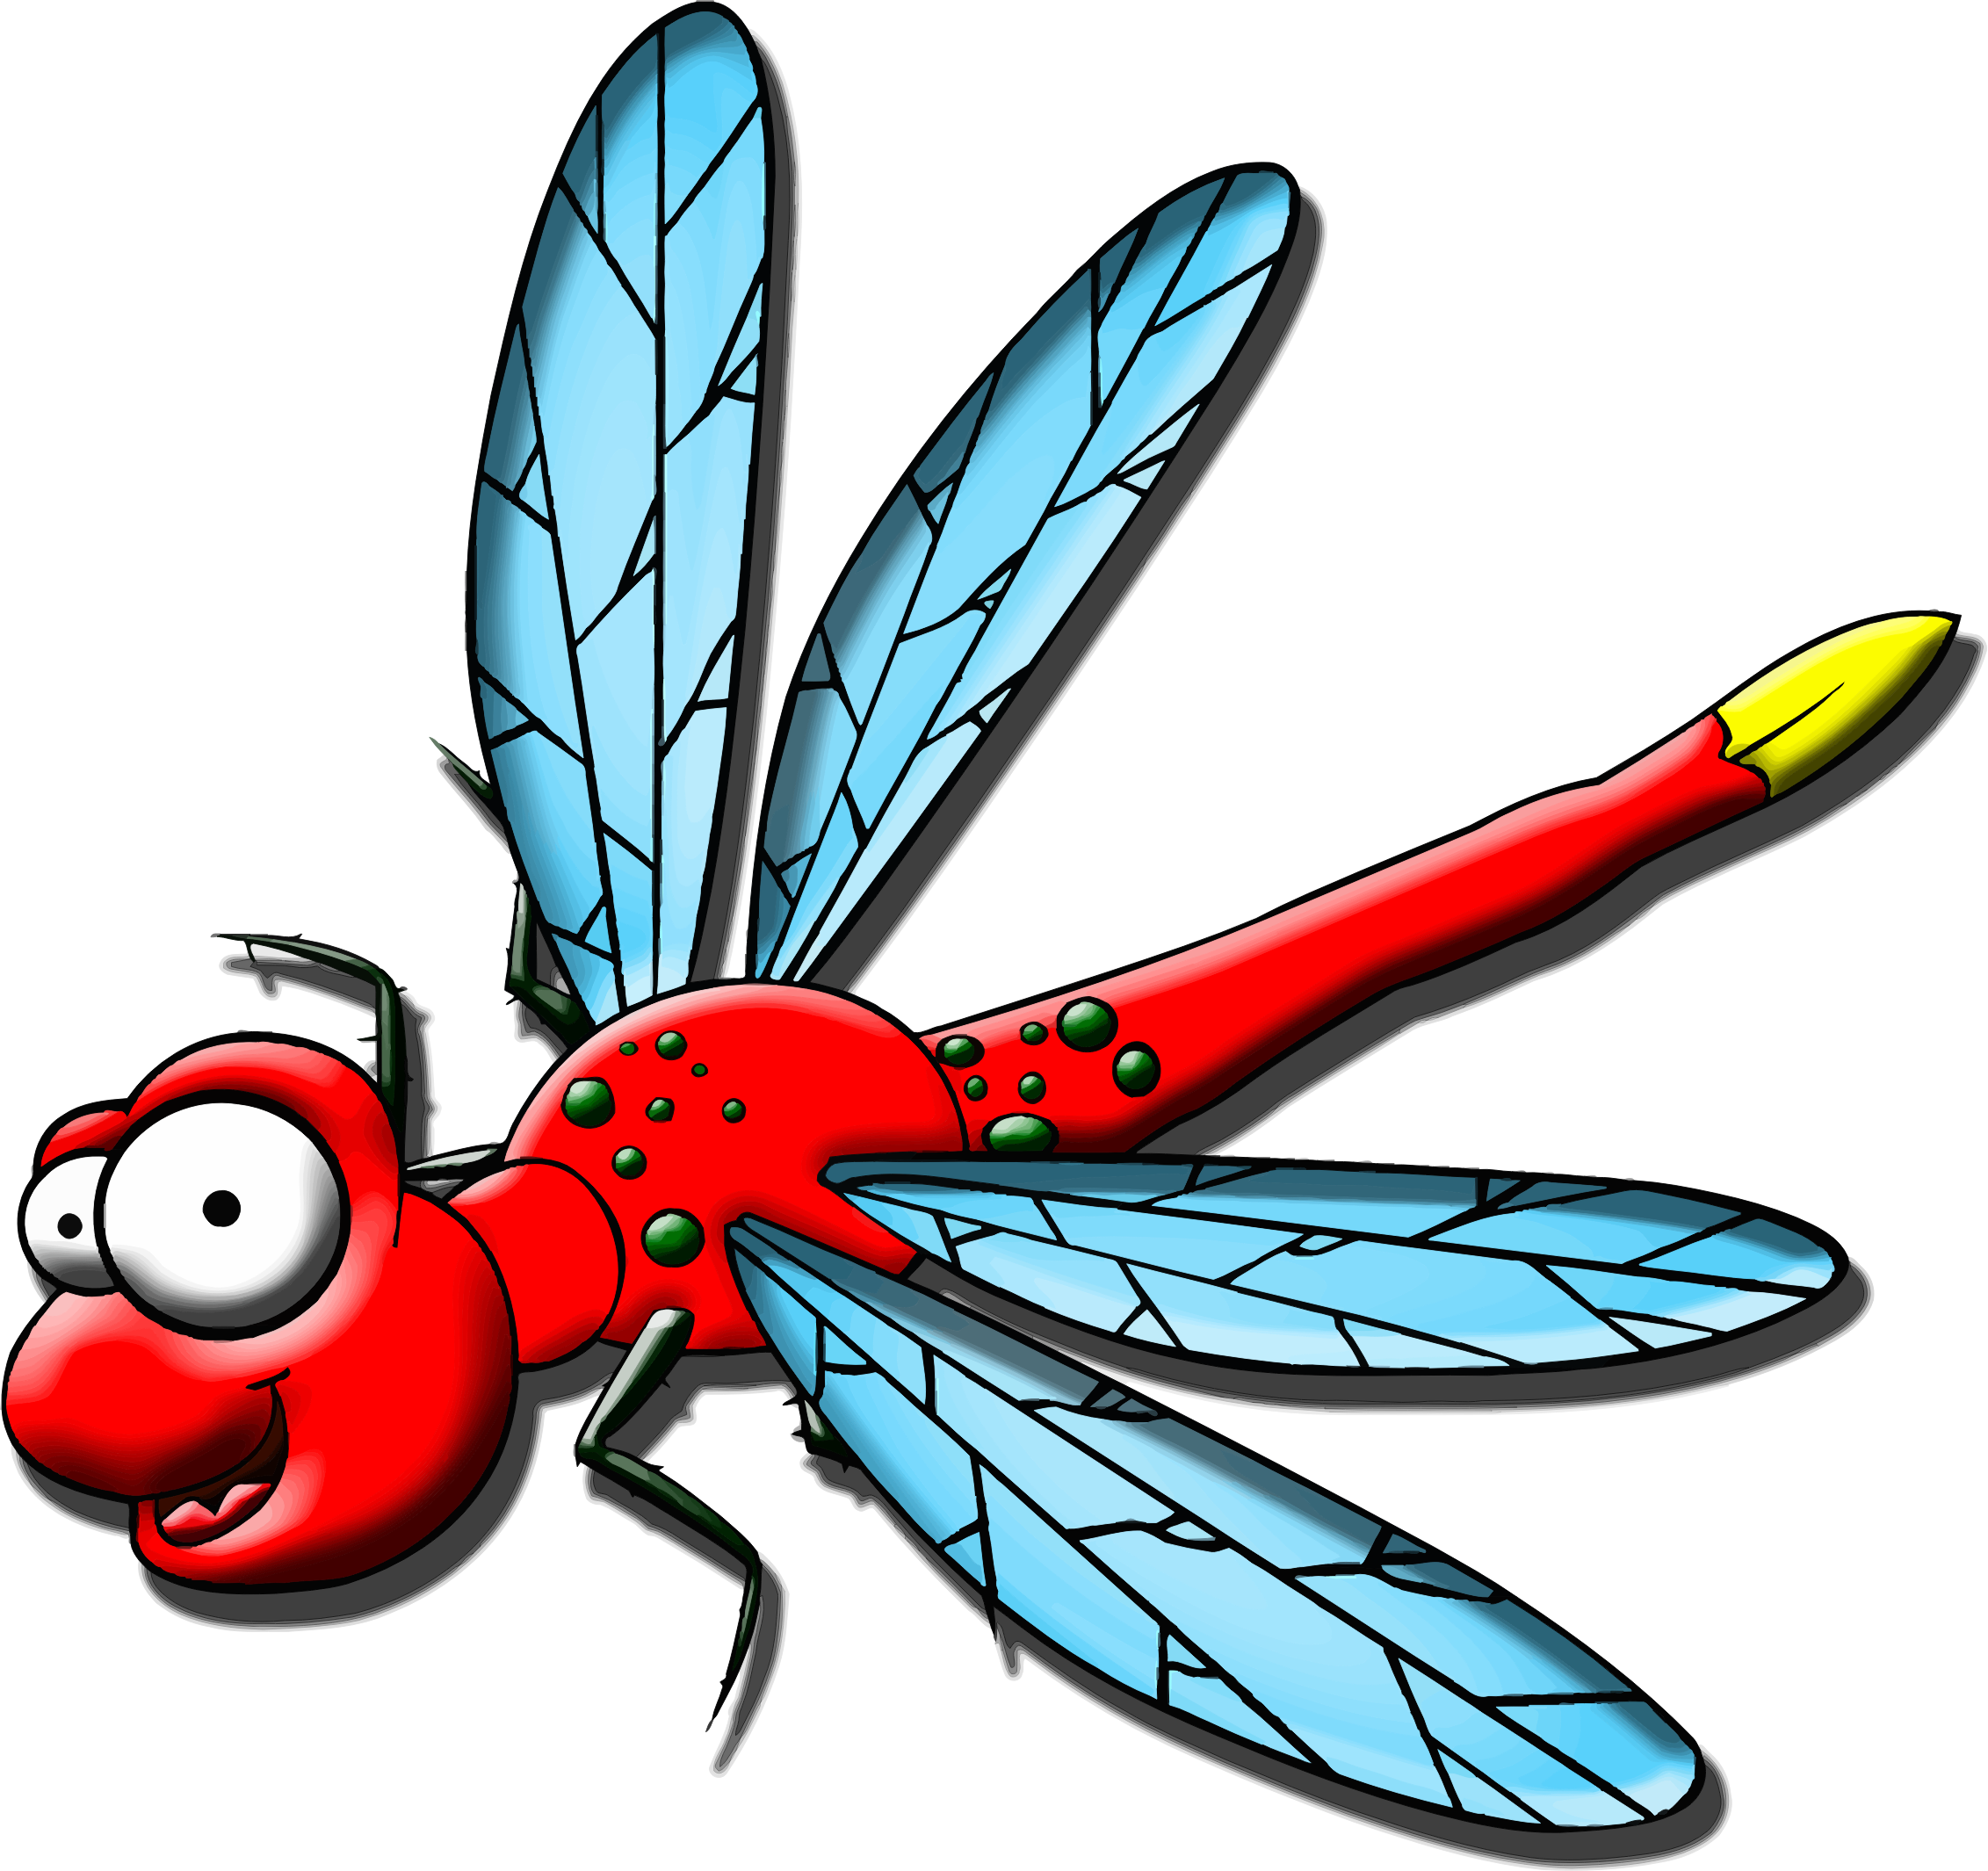 Cartoon Dragonfly by GDJ